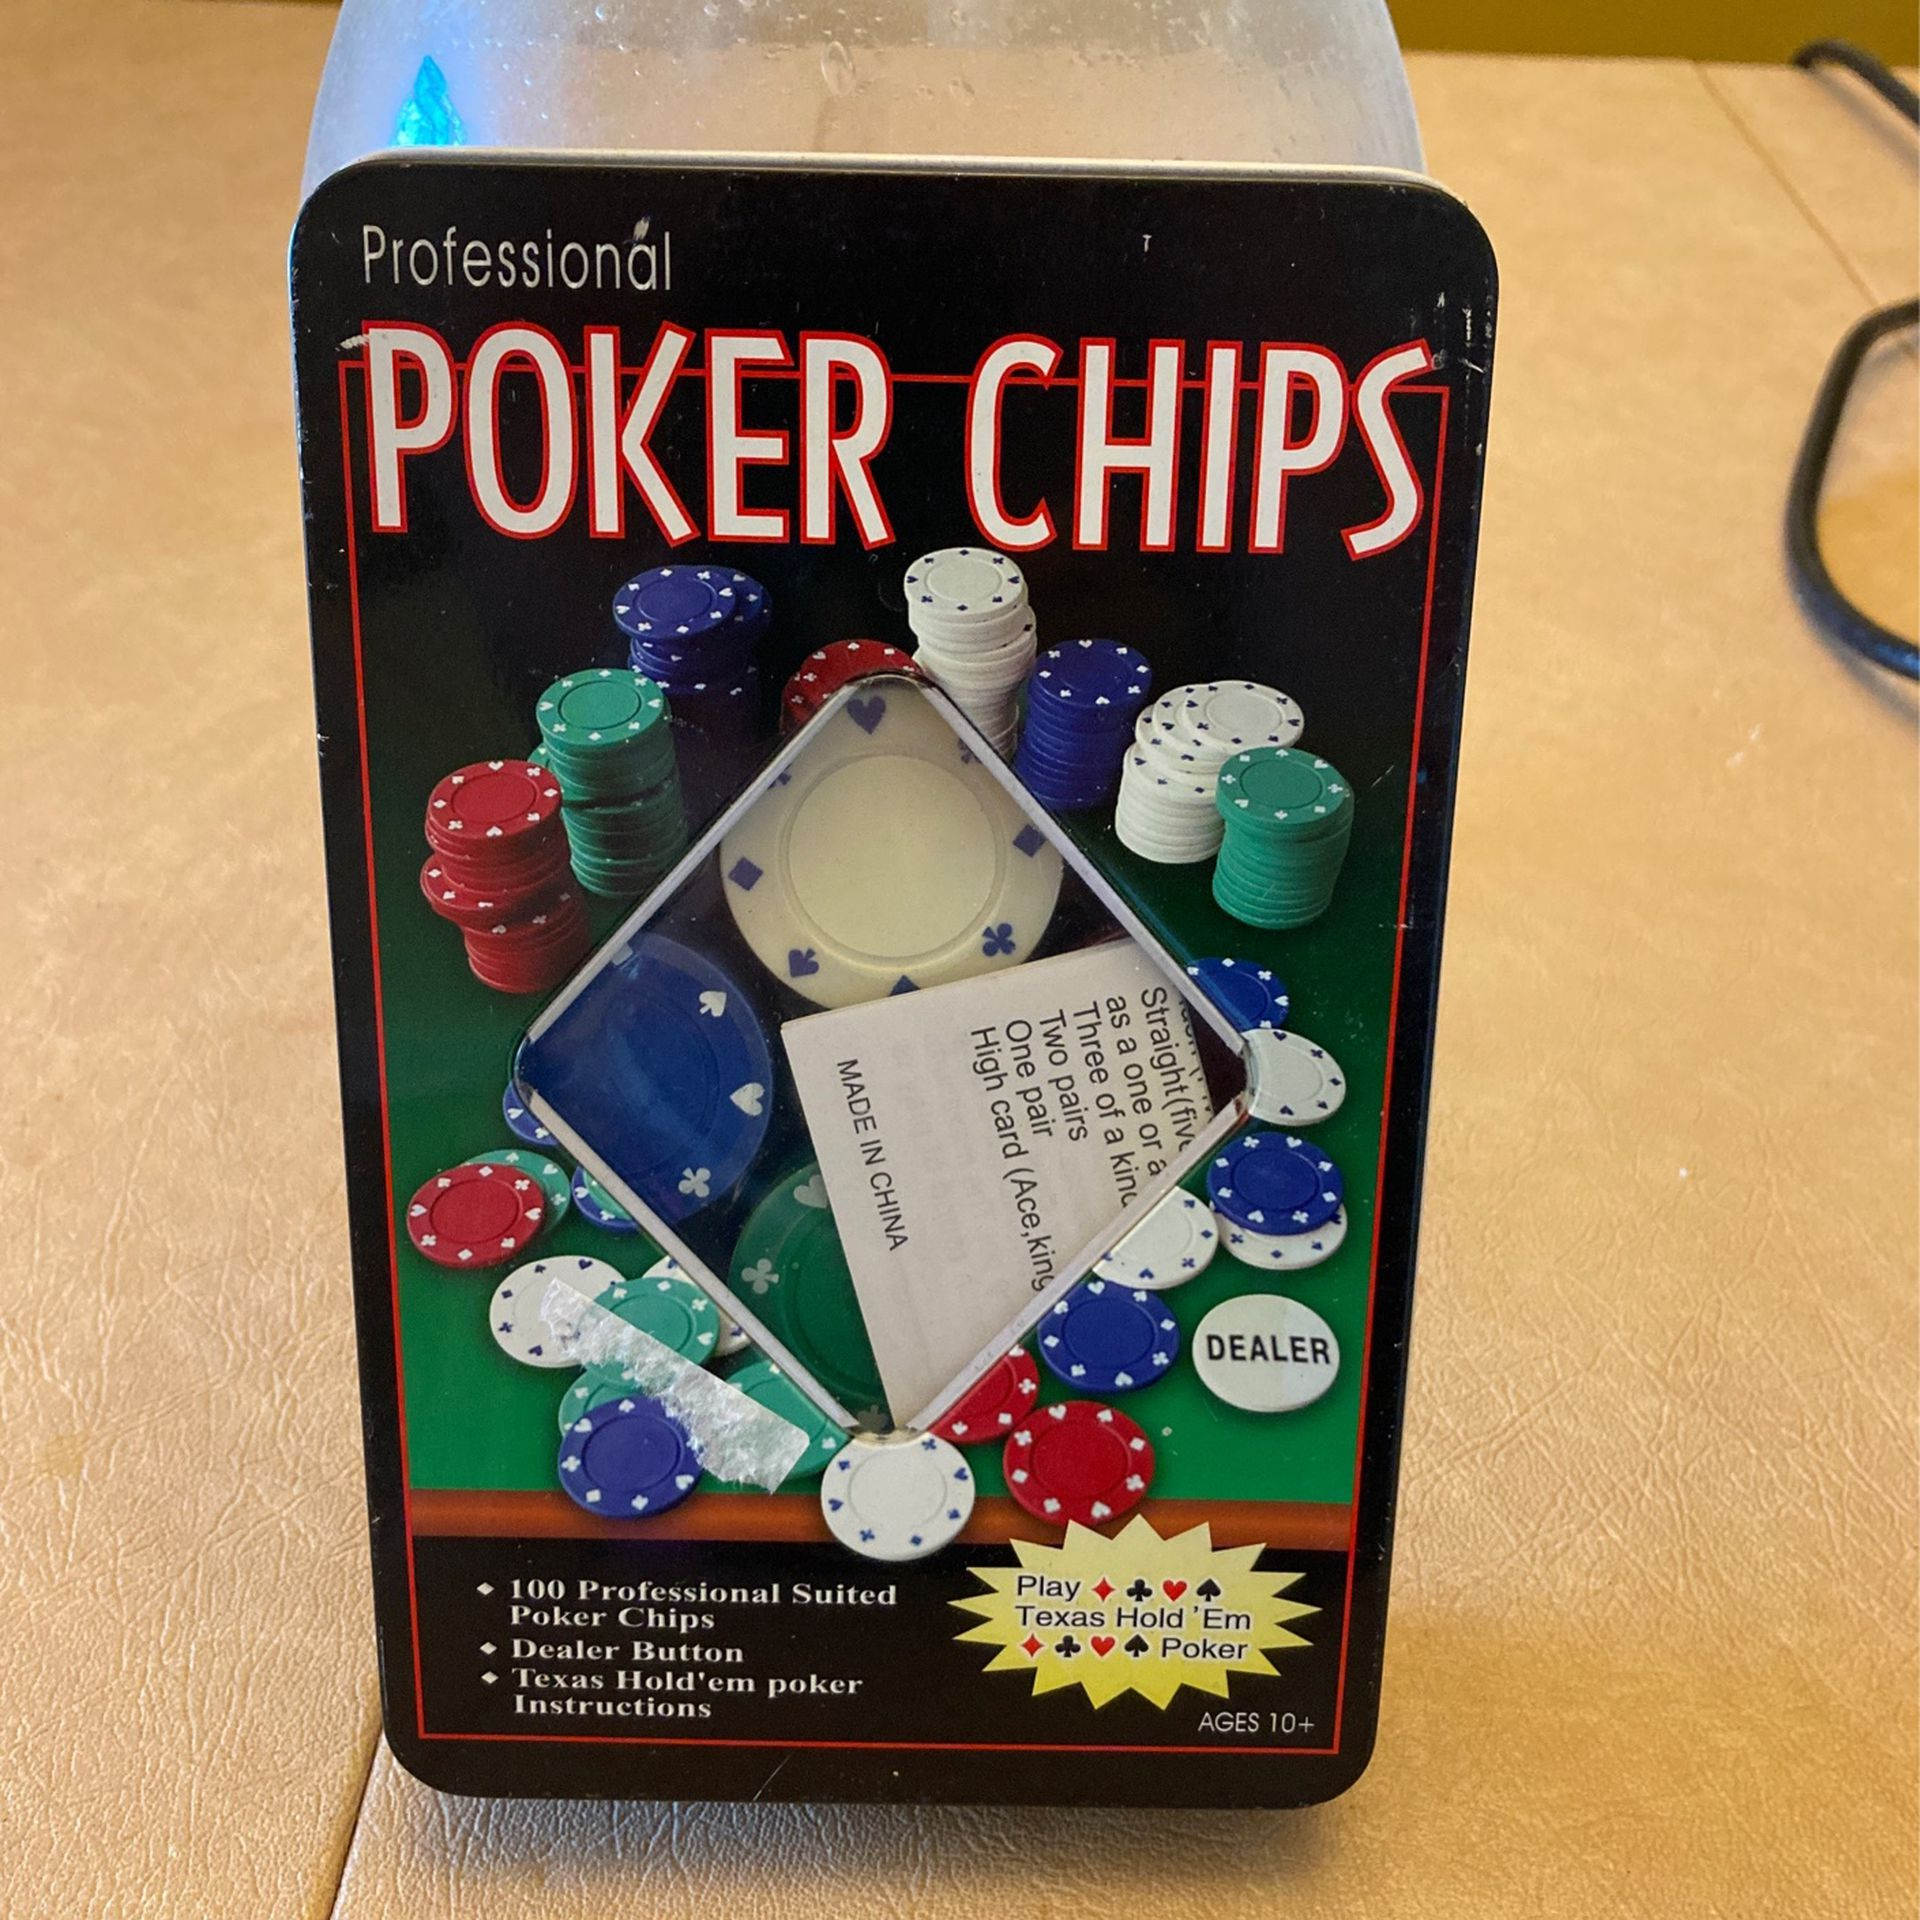 Professional Poker Chips